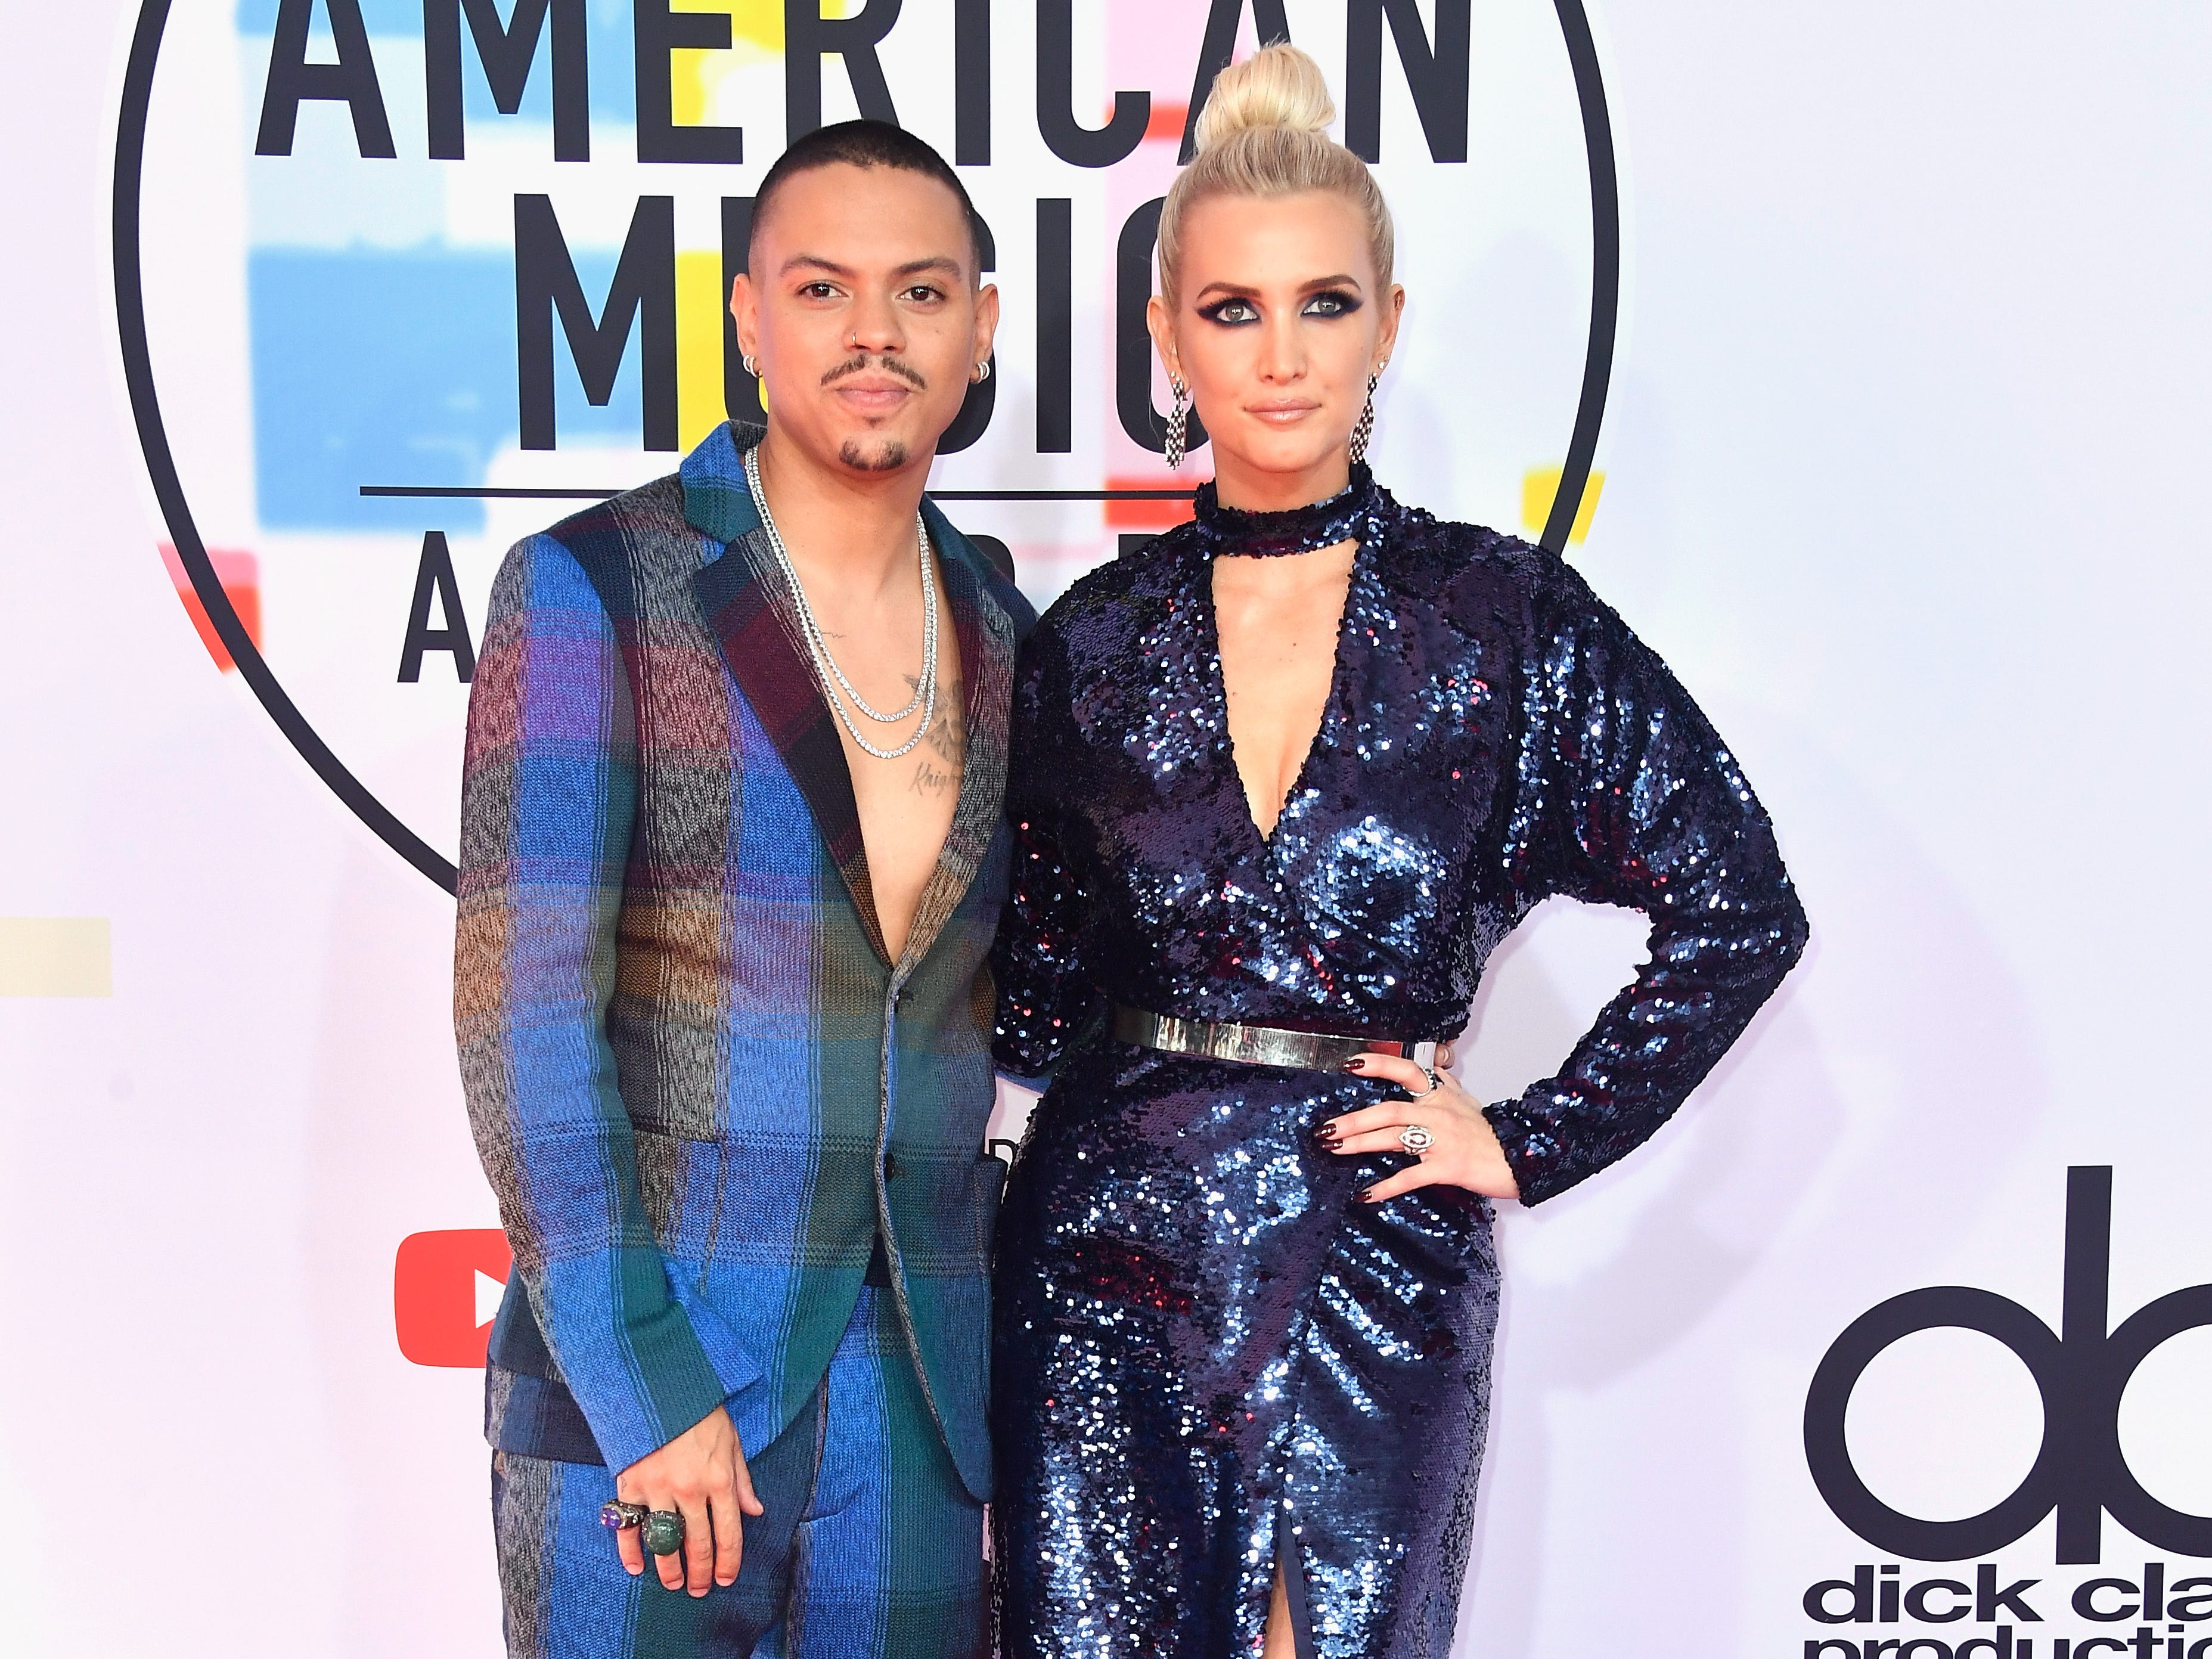 Evan Ross, left, and Ashlee Simpson